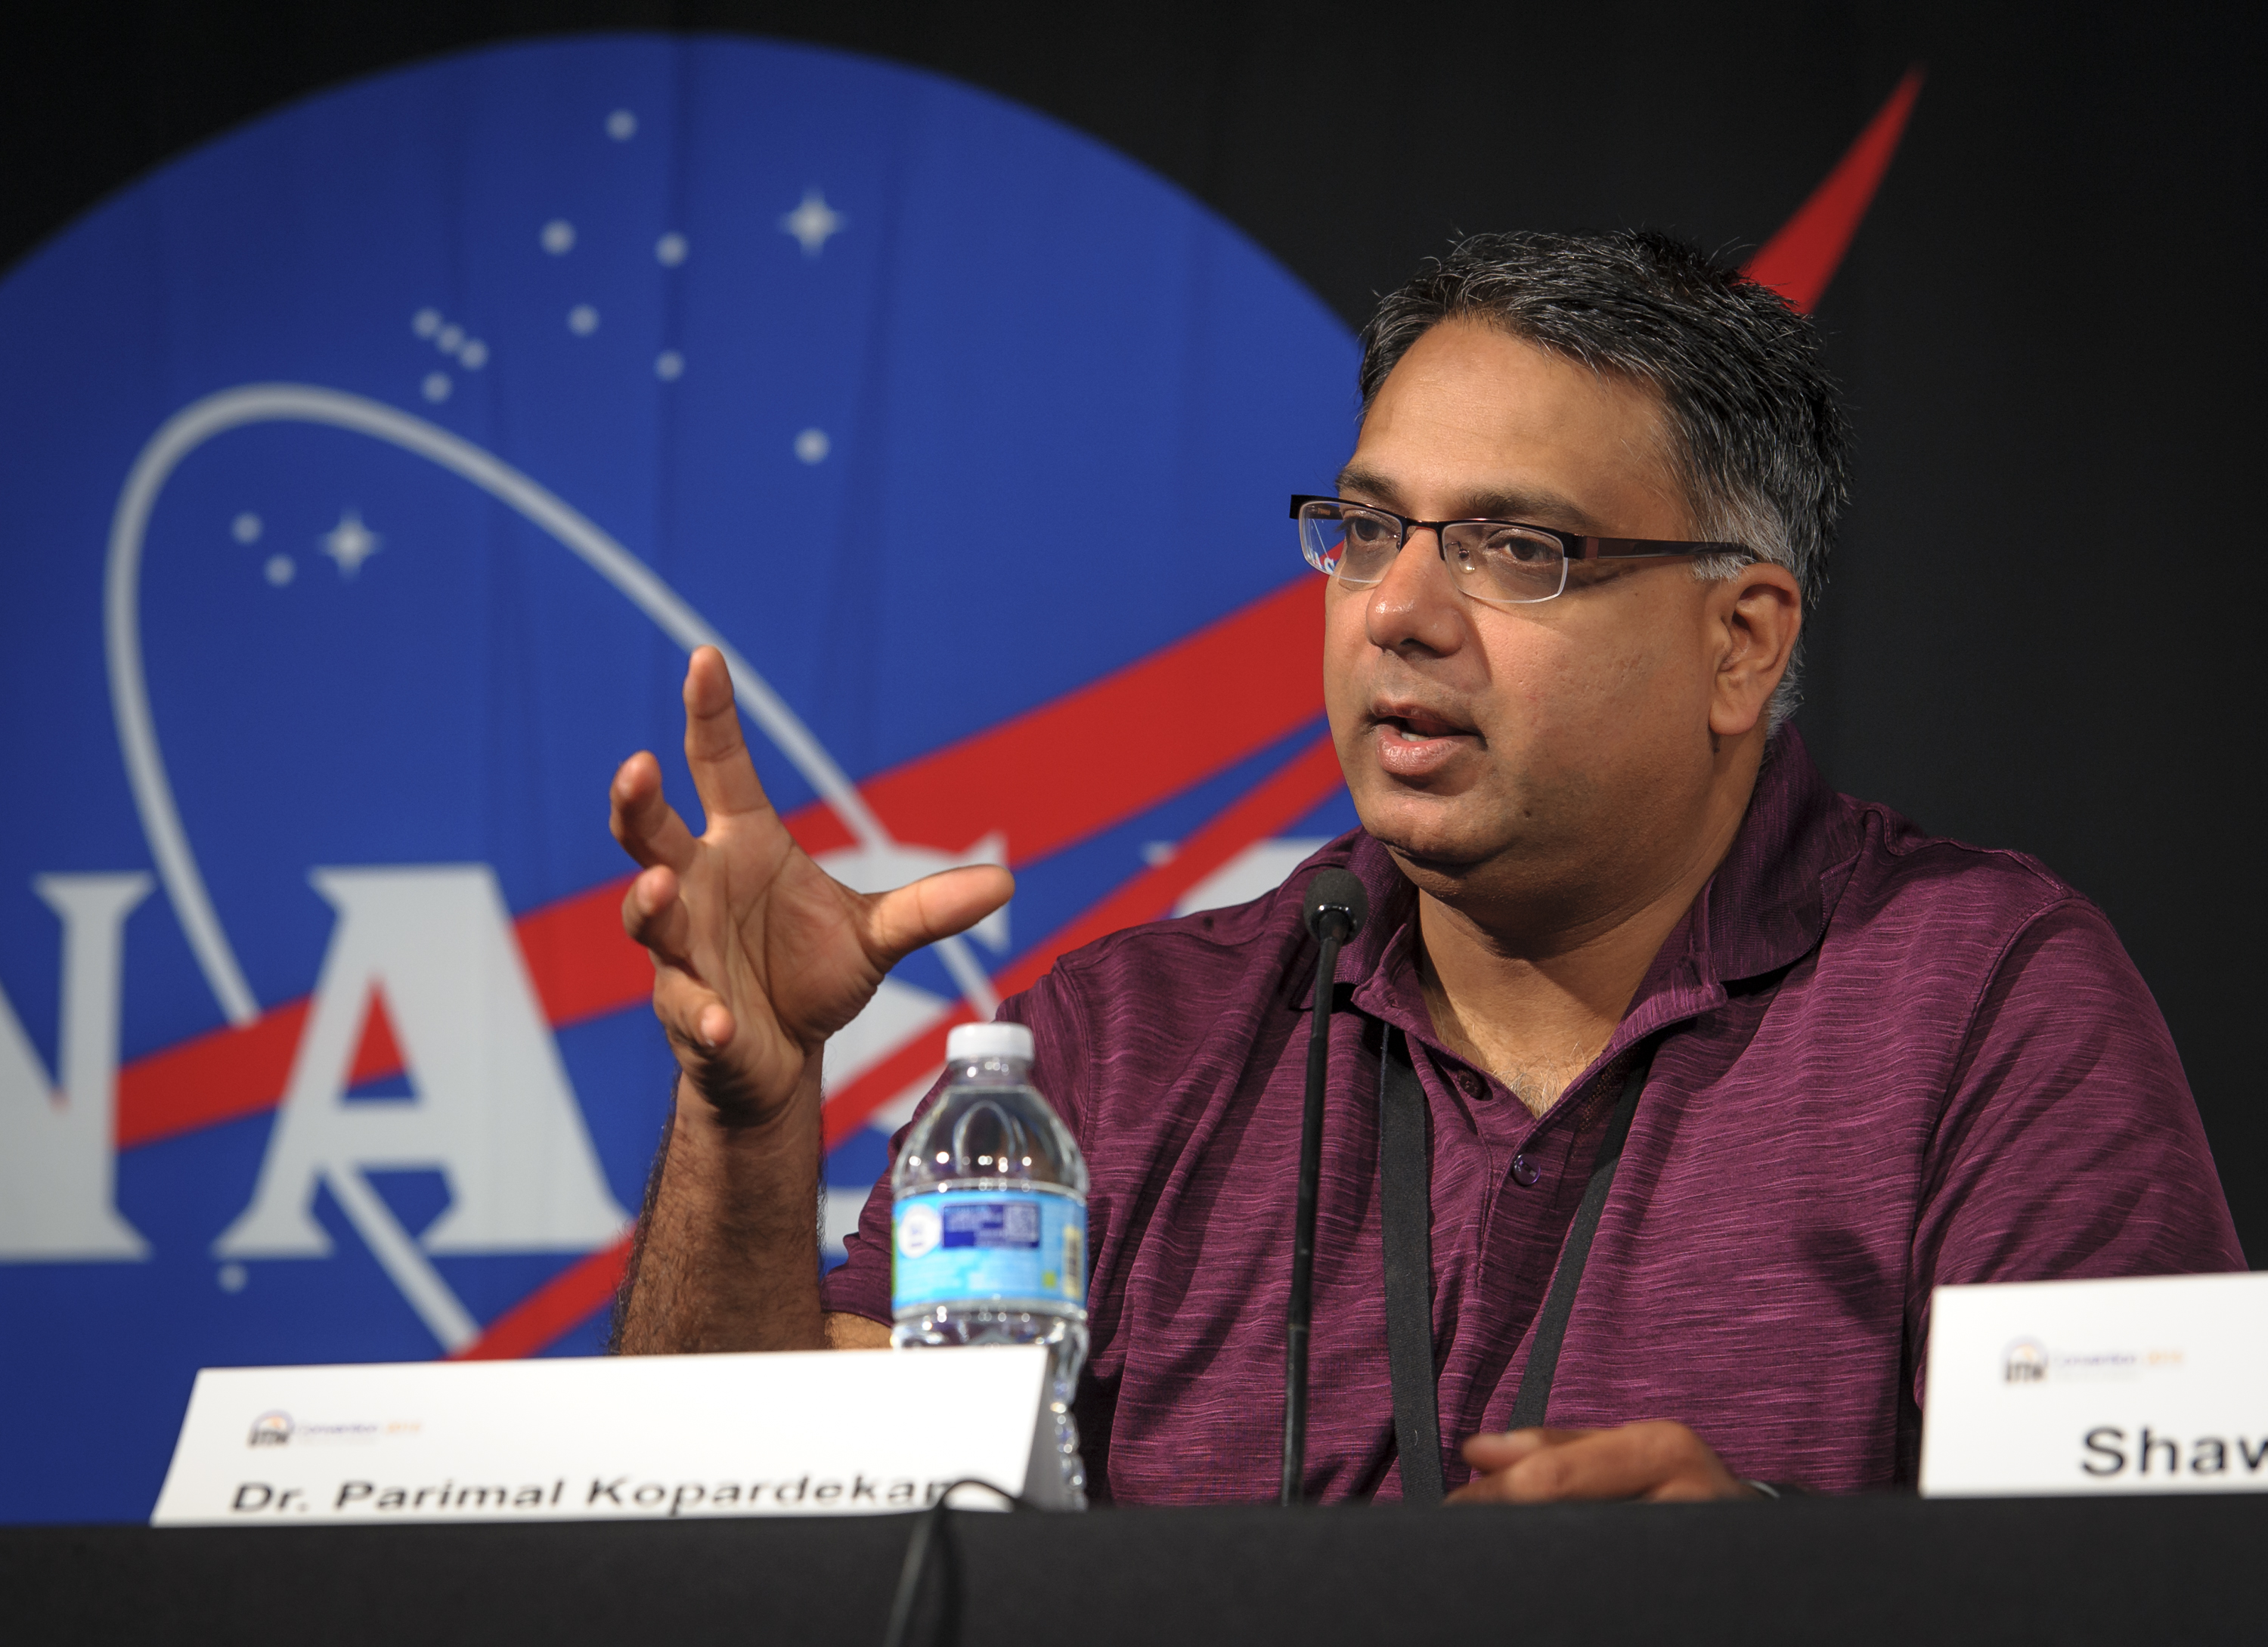 Photo of Parimal Kopardekar speaking in a panel discussion. A large NASA insignia is displayed in the background.